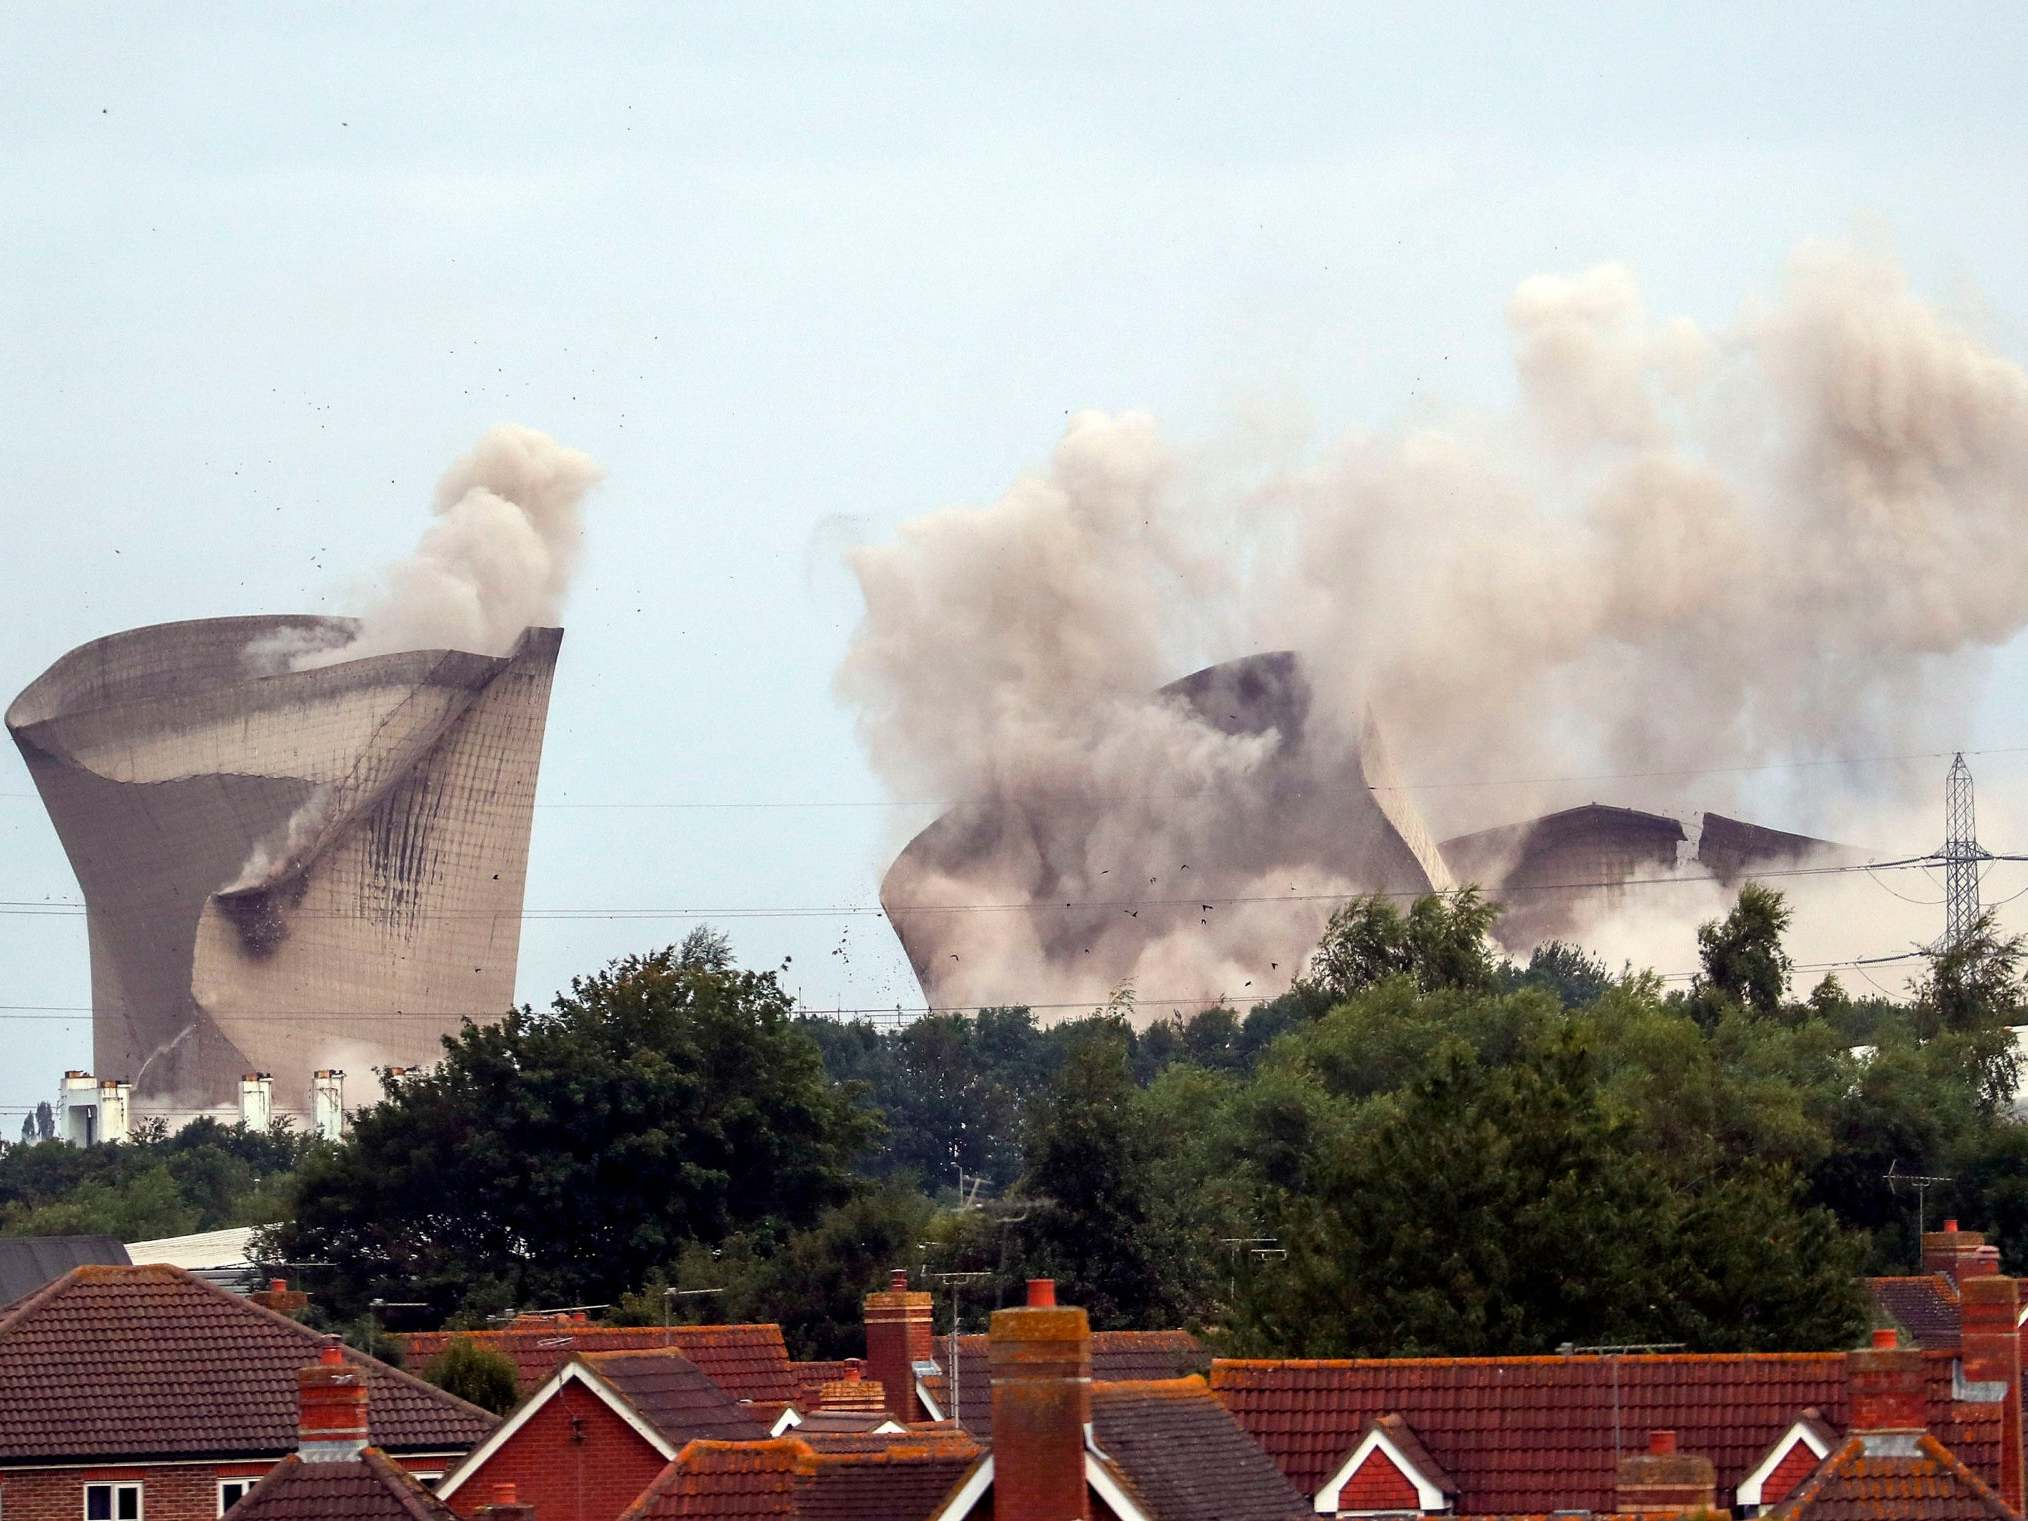 Power cut hits thousands moments after power station demolished